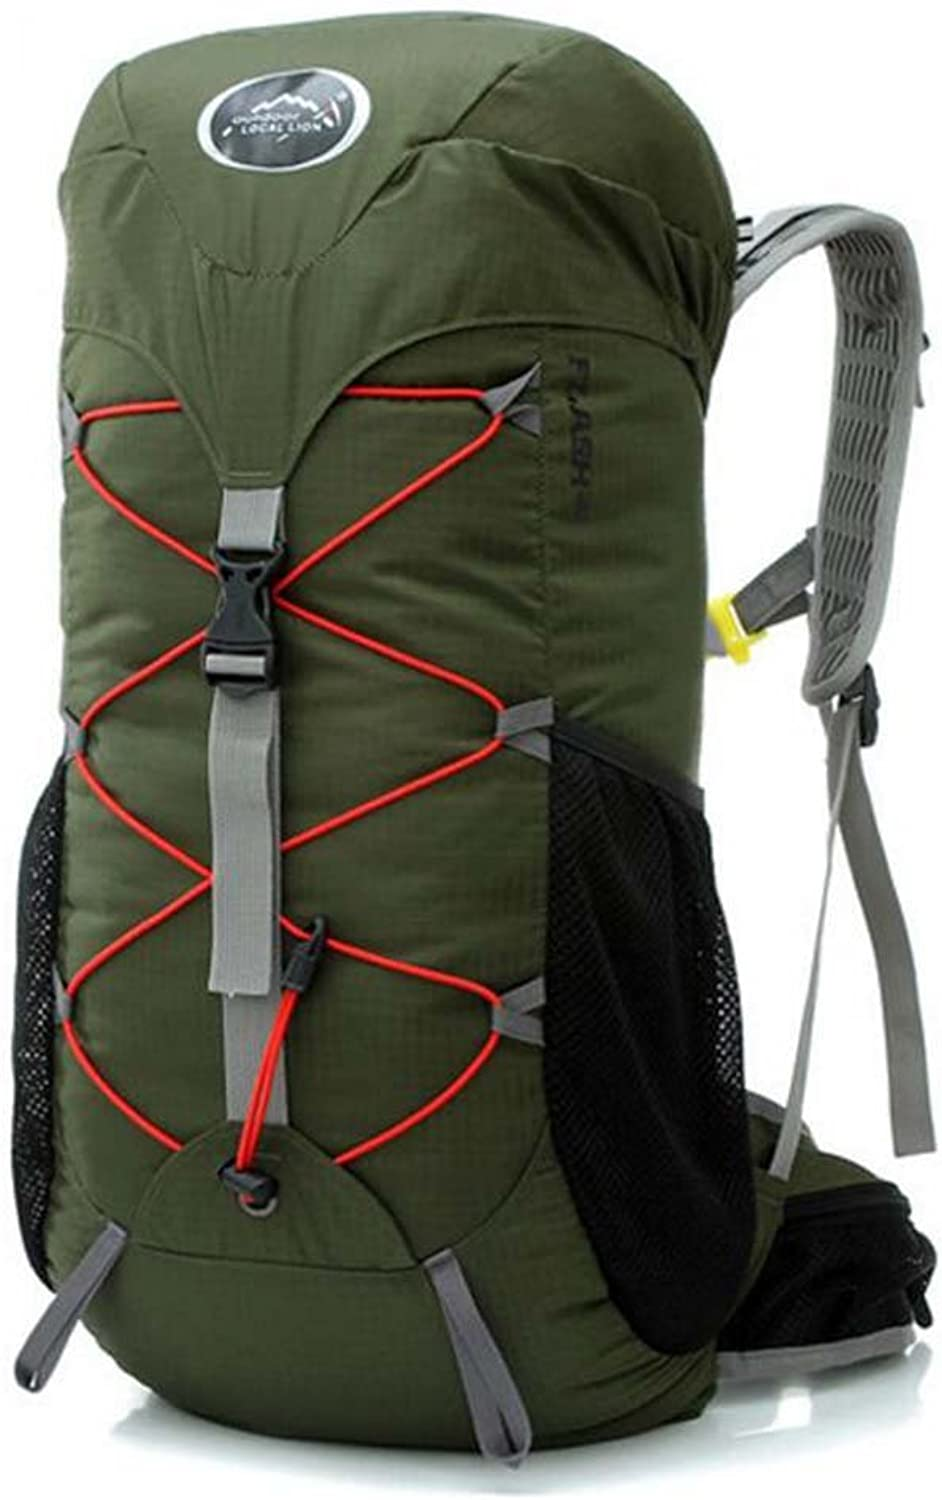 Mountain Bike Riding Backpack, Camping Equipment Supplies Sports Outdoor Waterproof Light Backpack Mountaineering Backpack,Militarygreen